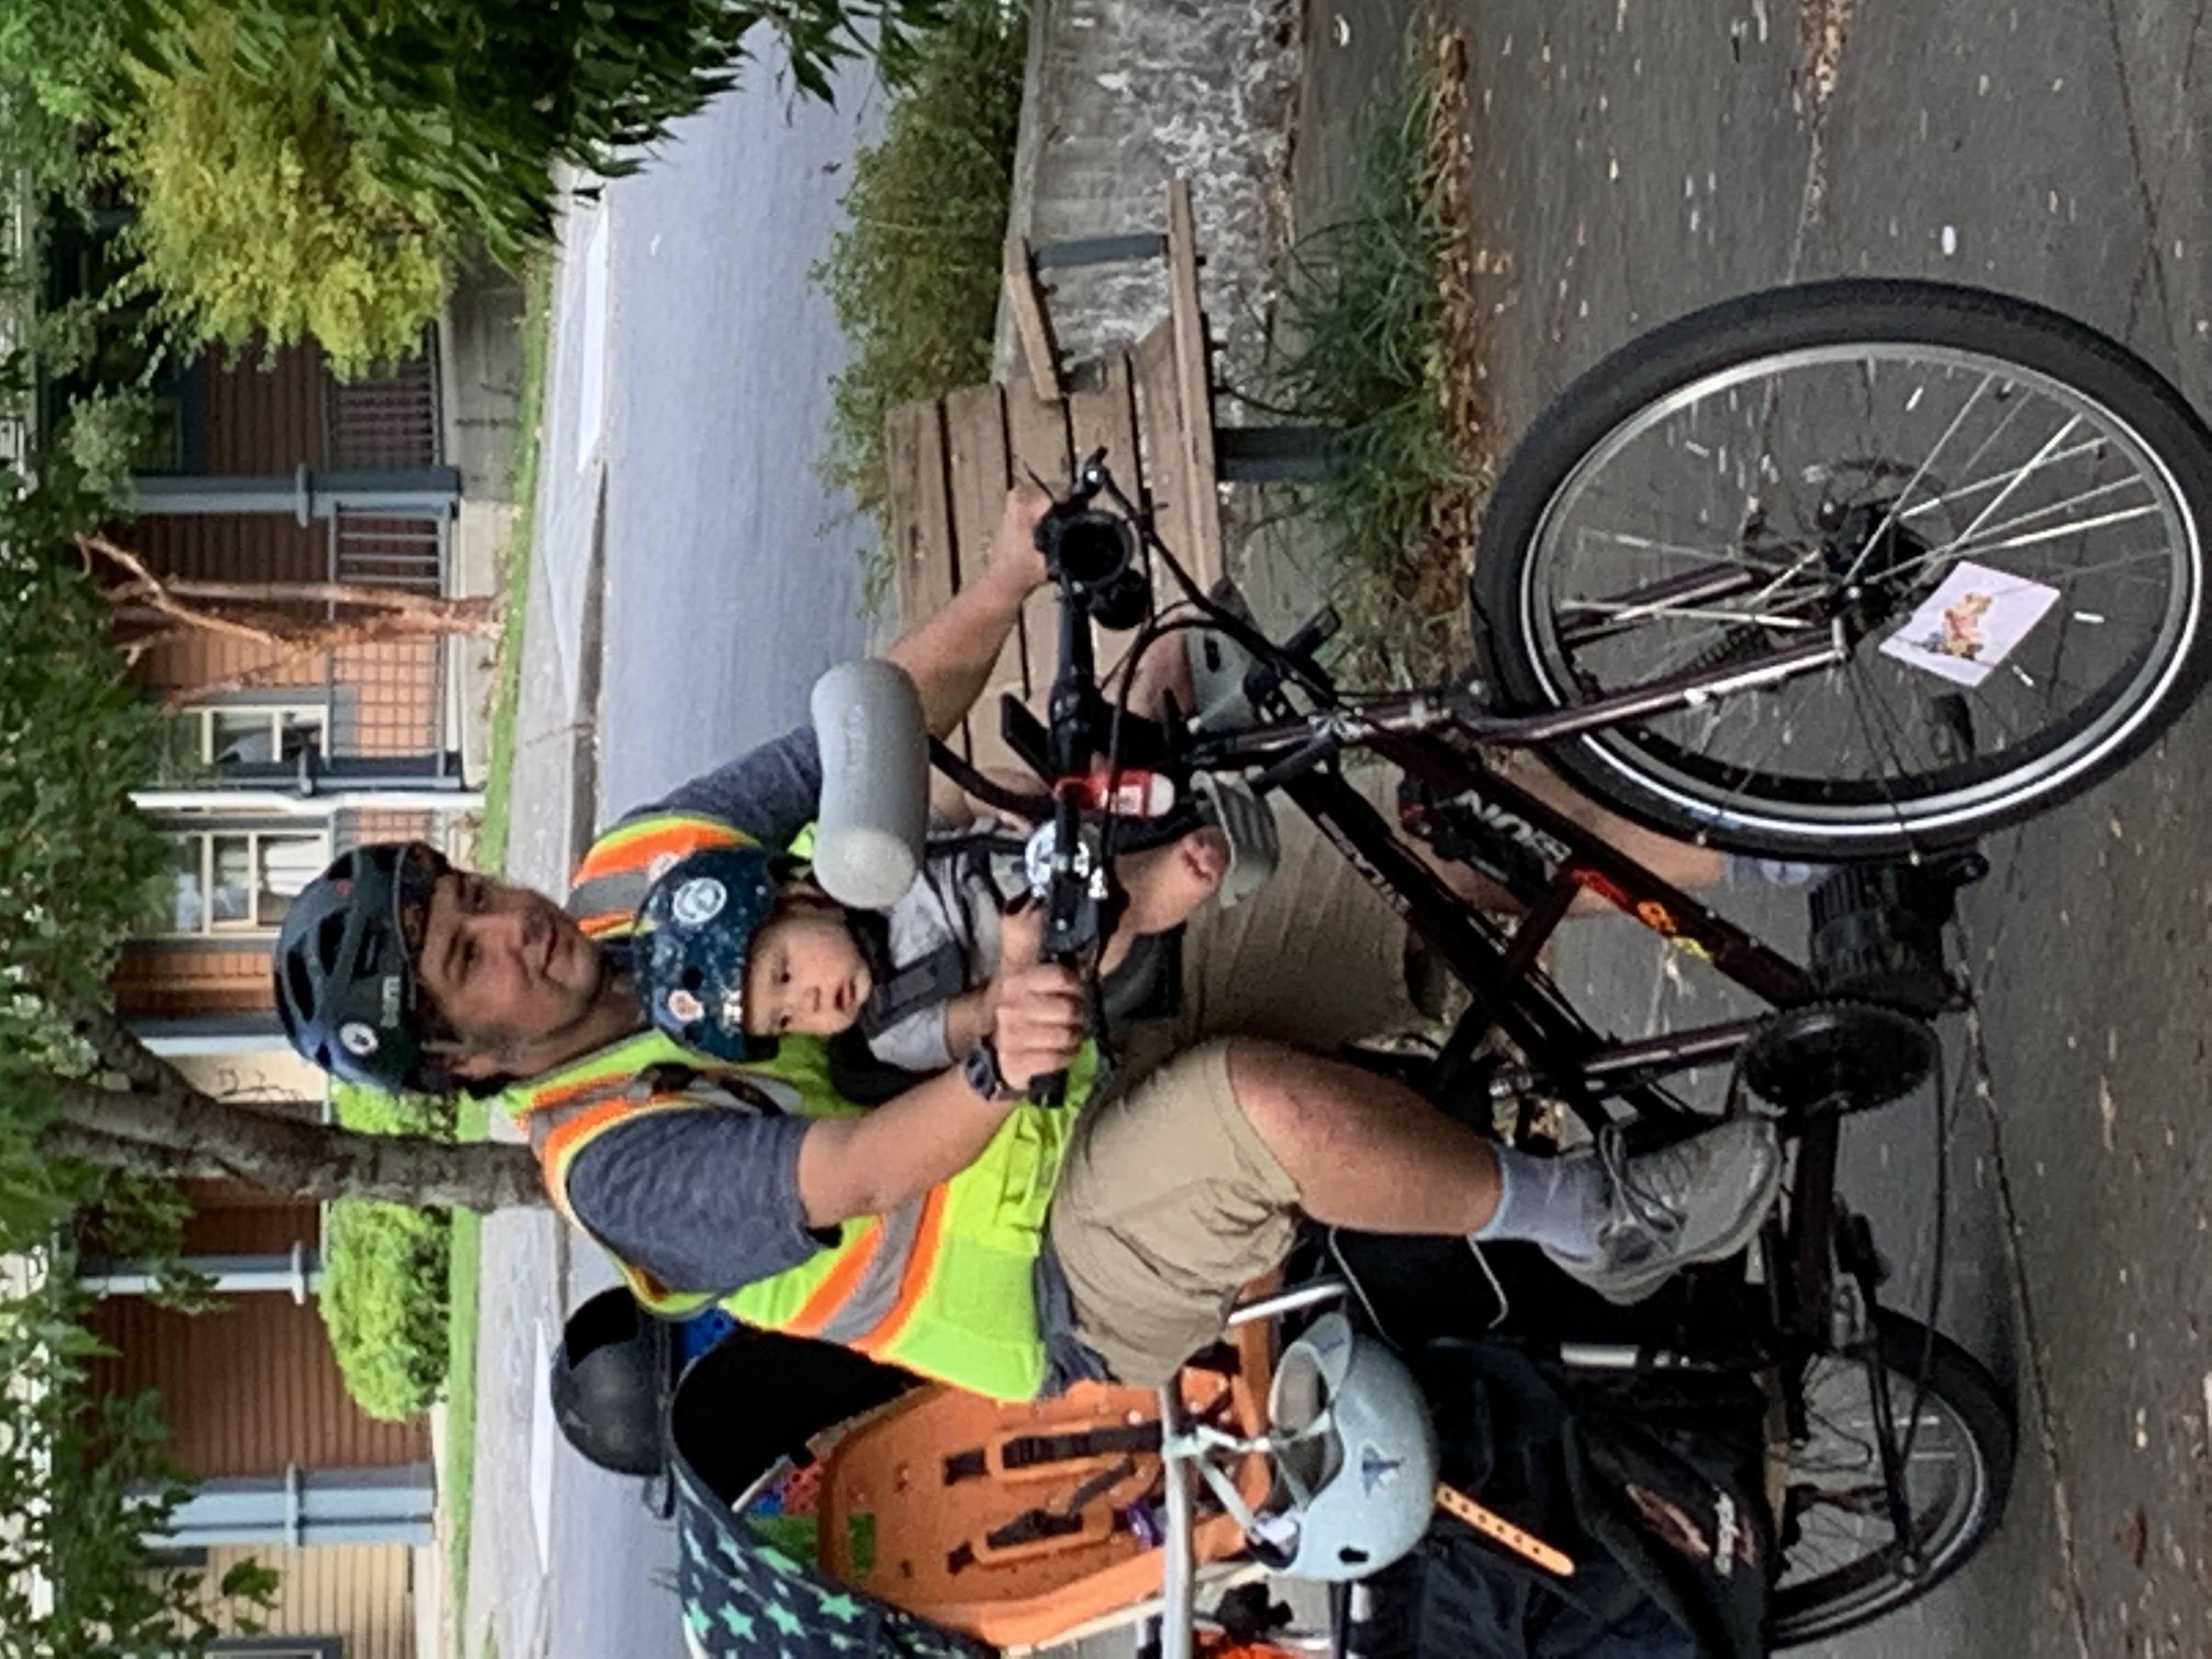 Sal Ponce rides with his daughter on his e-cargo bike